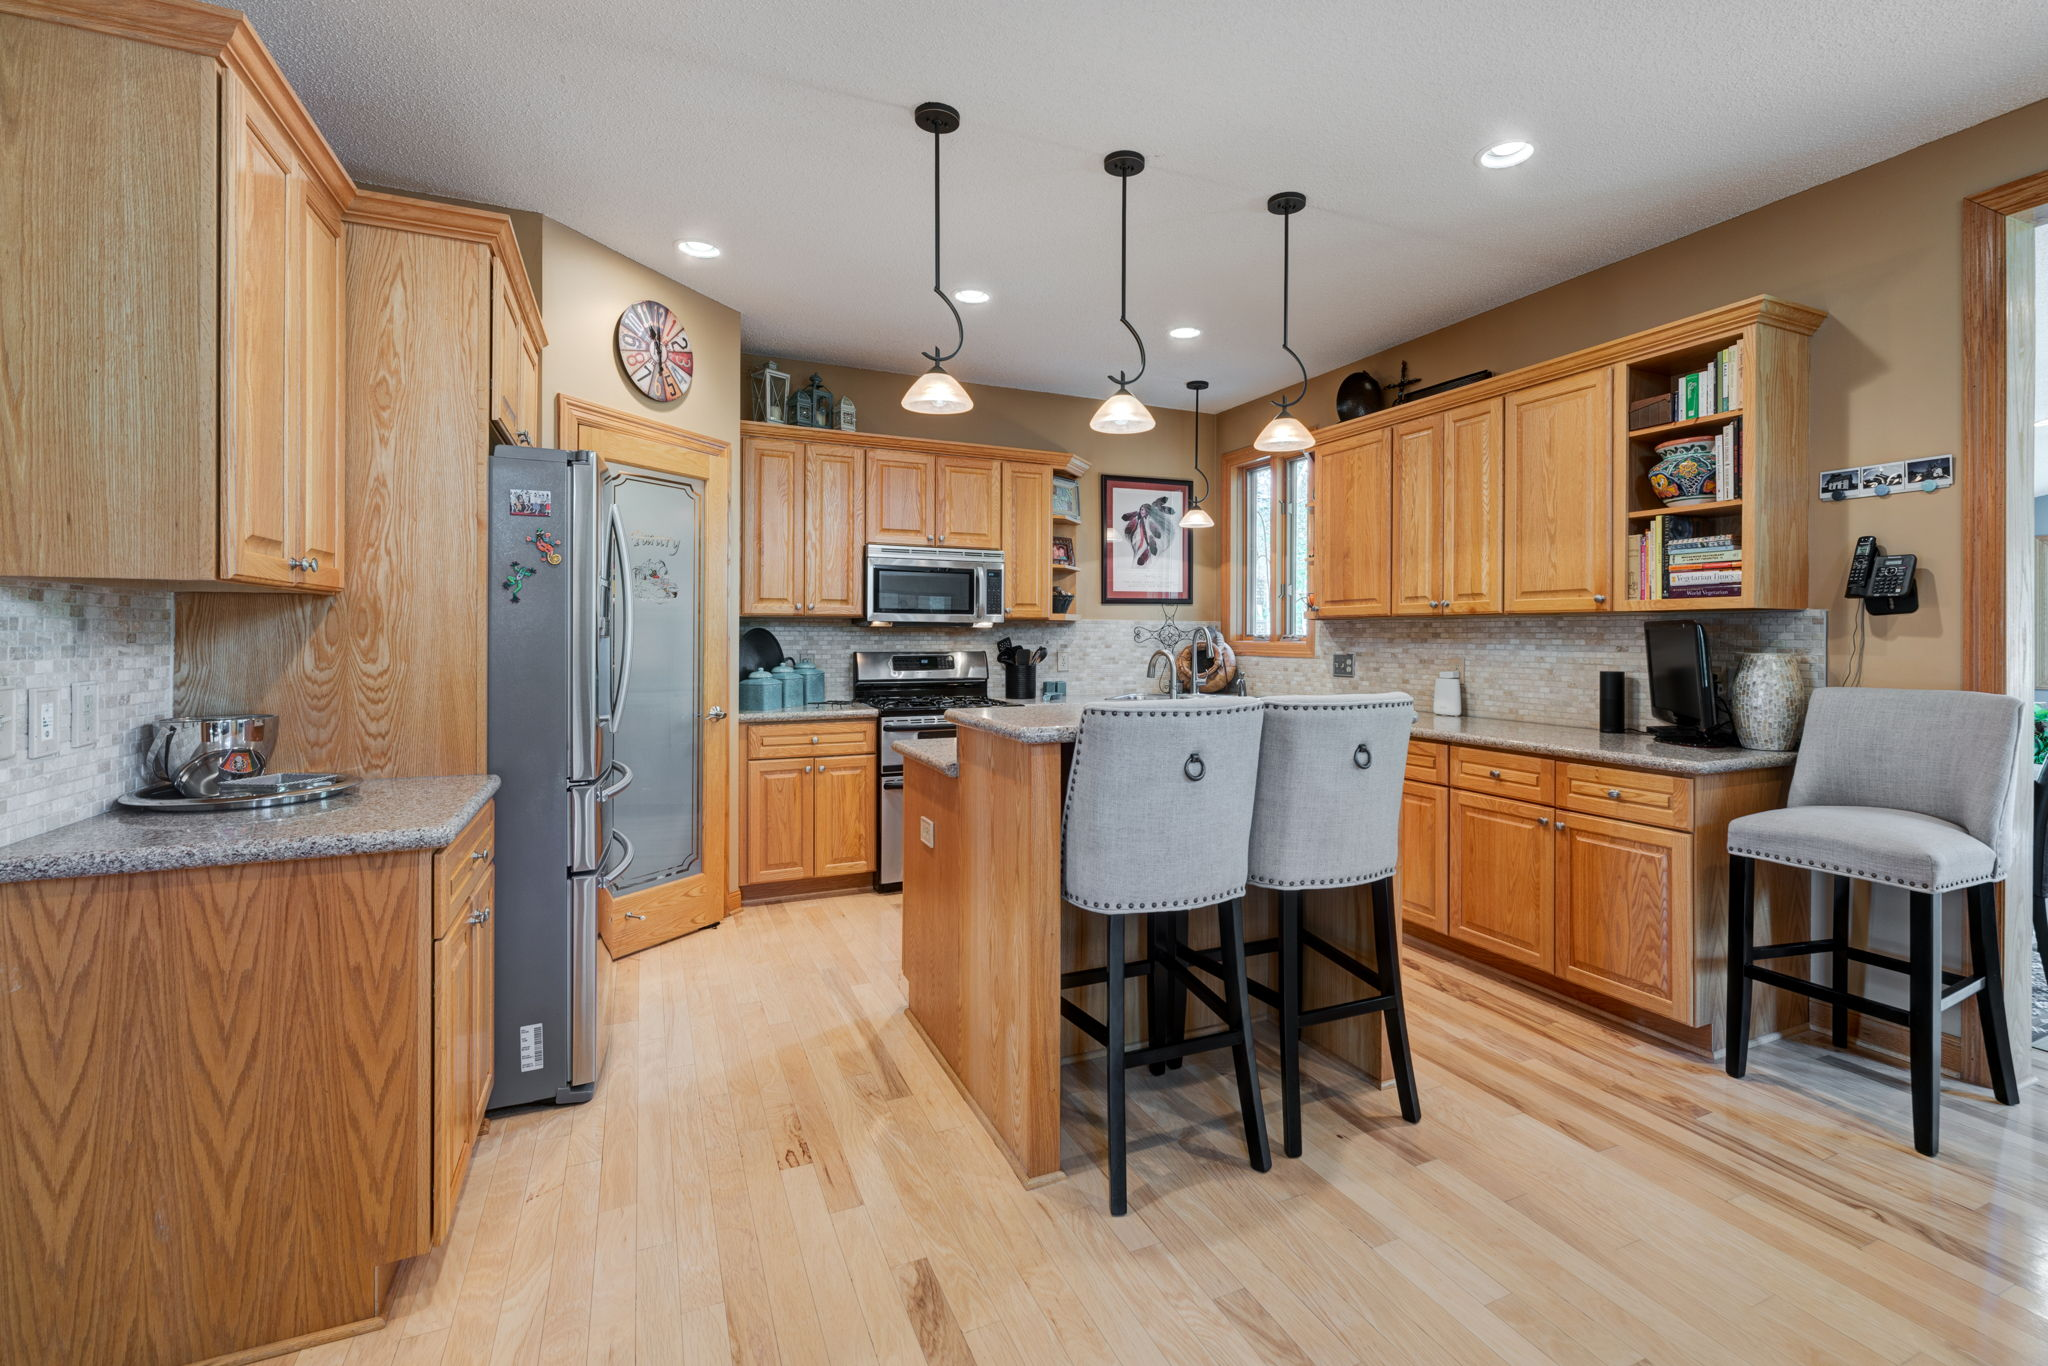 Kitchen/Breakfast Bar with stainless Steel Appliances and Walk-In Pantry